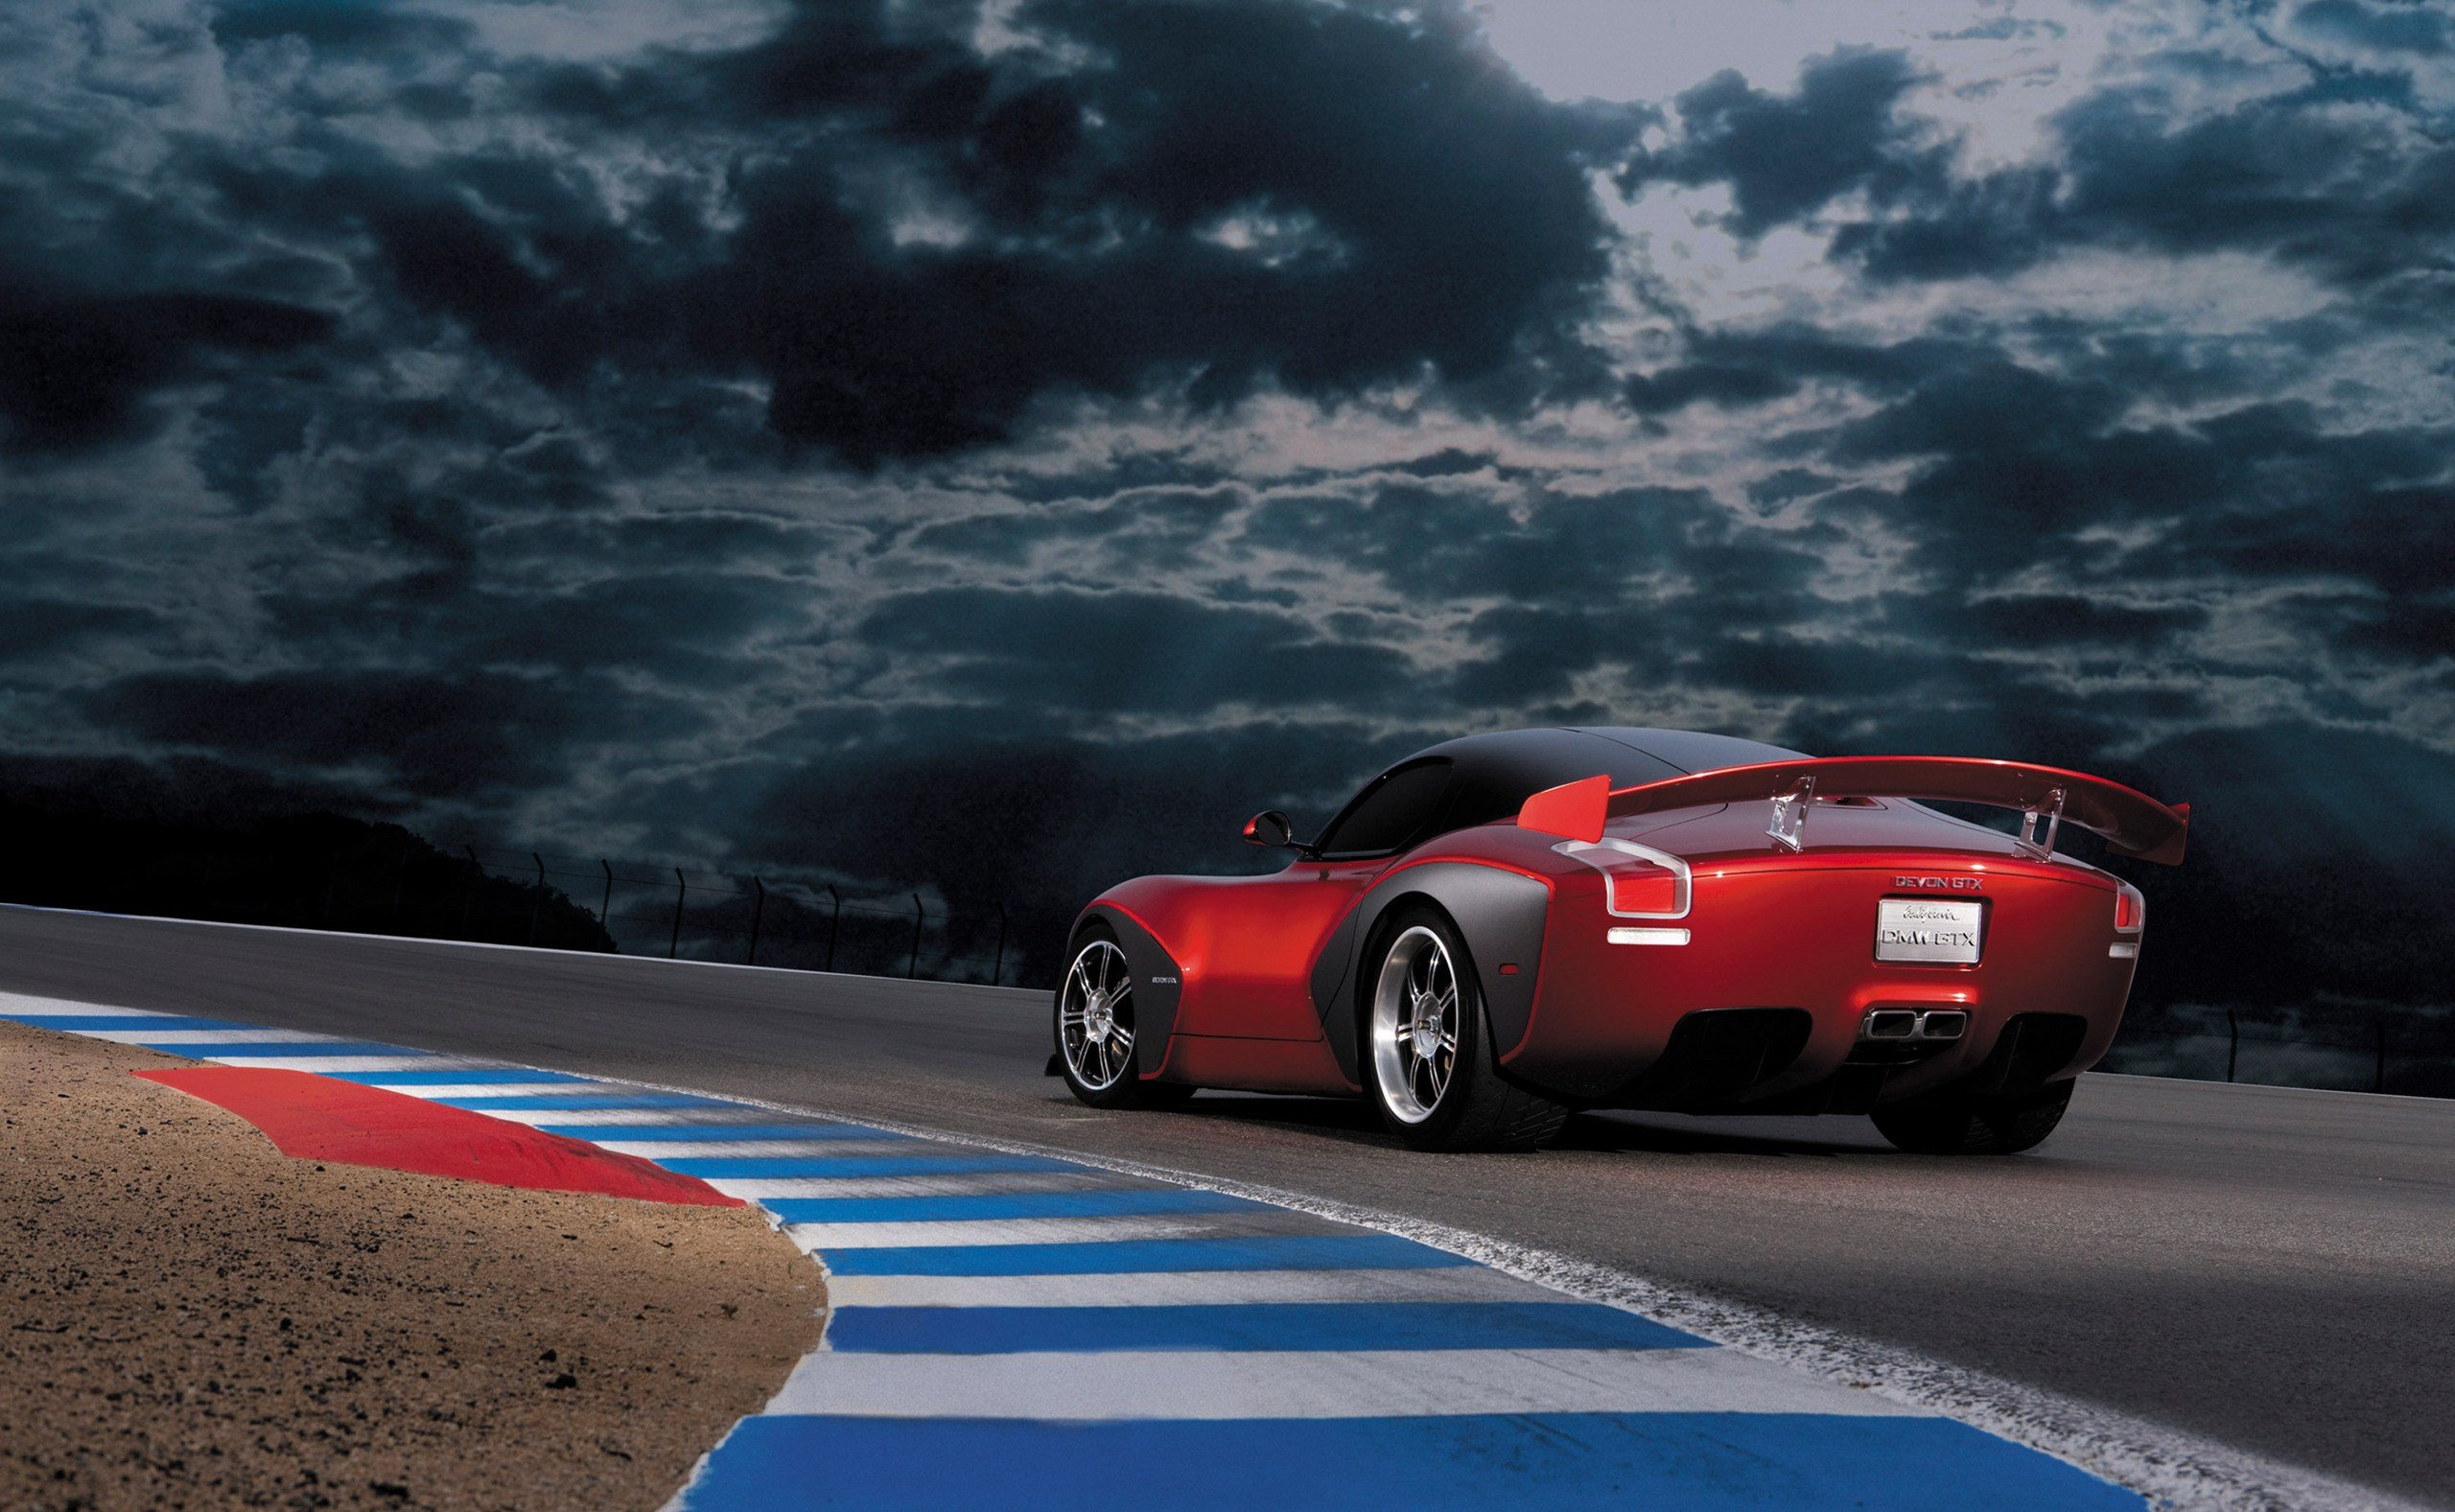 New Exotic Cars Images Devon Gtx Hd Wallpaper And Background On This Month